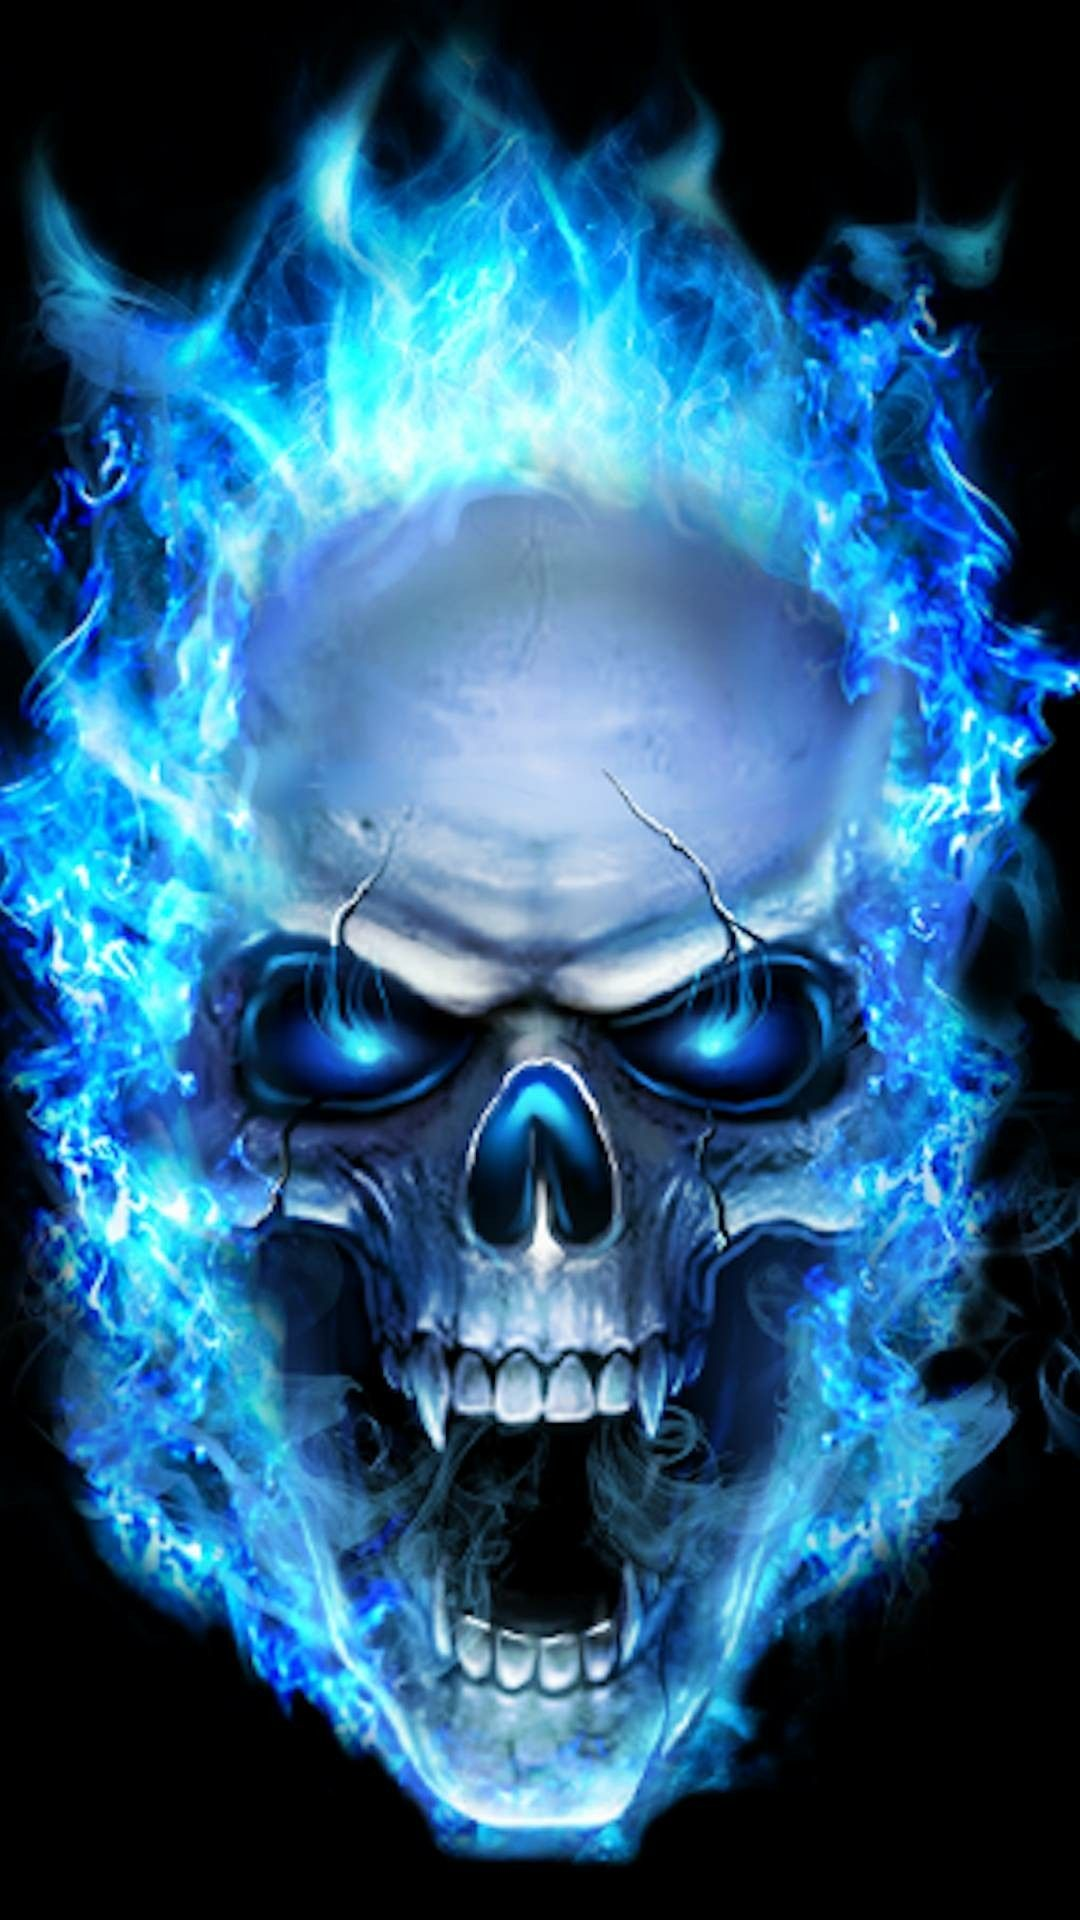 Blue Fire Iphone Background On High Quality Wallpaper On Snowman Wallpapers Com Iphone Android Wallpape In 2020 Skull Wallpaper Skull Artwork Sugar Skull Wallpaper